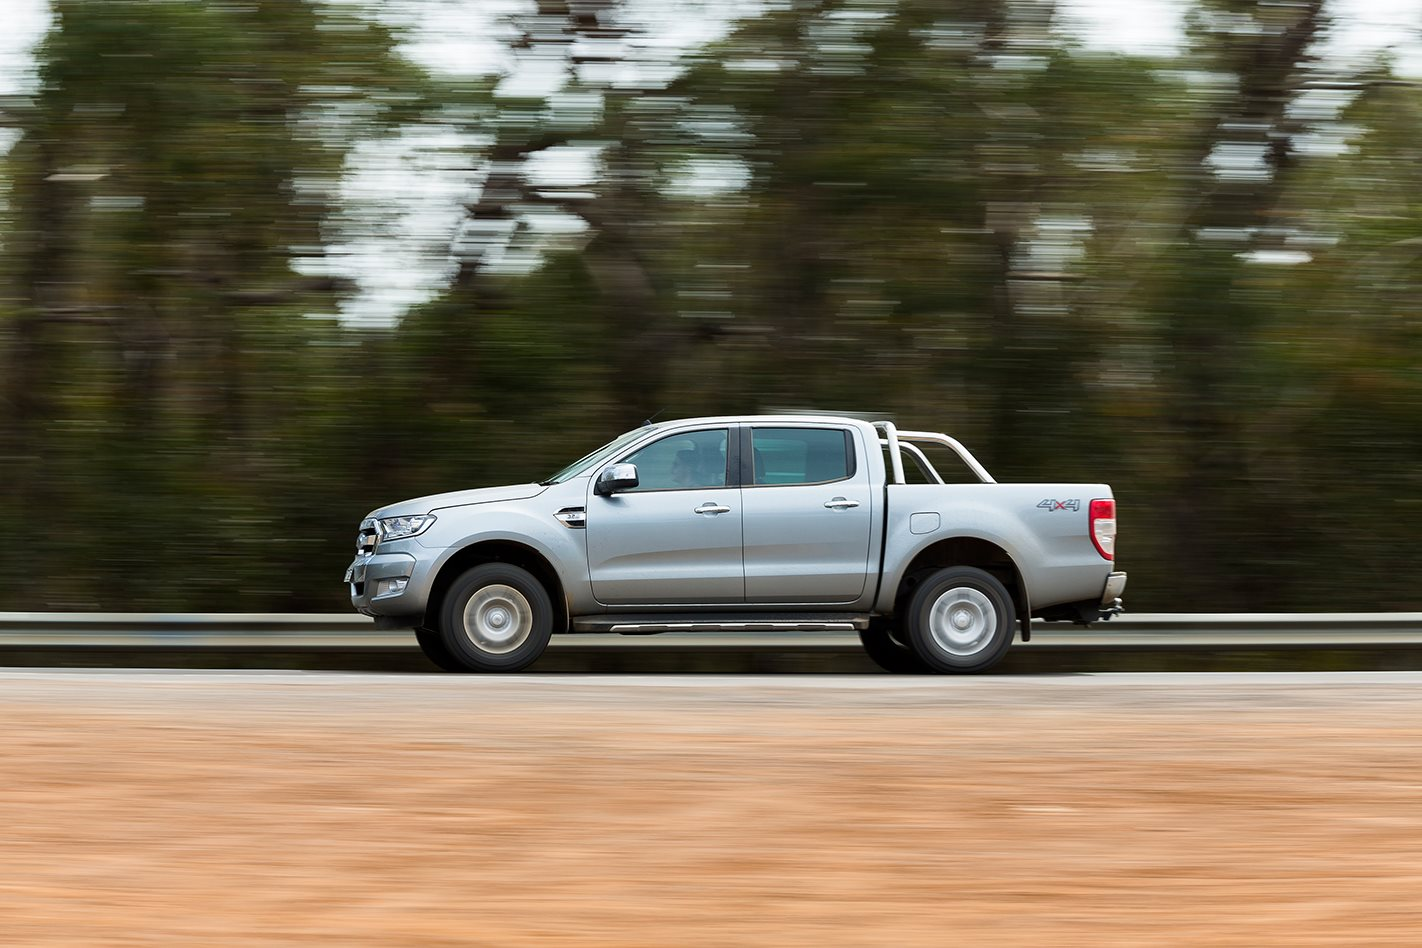 2017 Ford Ranger Double Cab ute: Which spec is best?